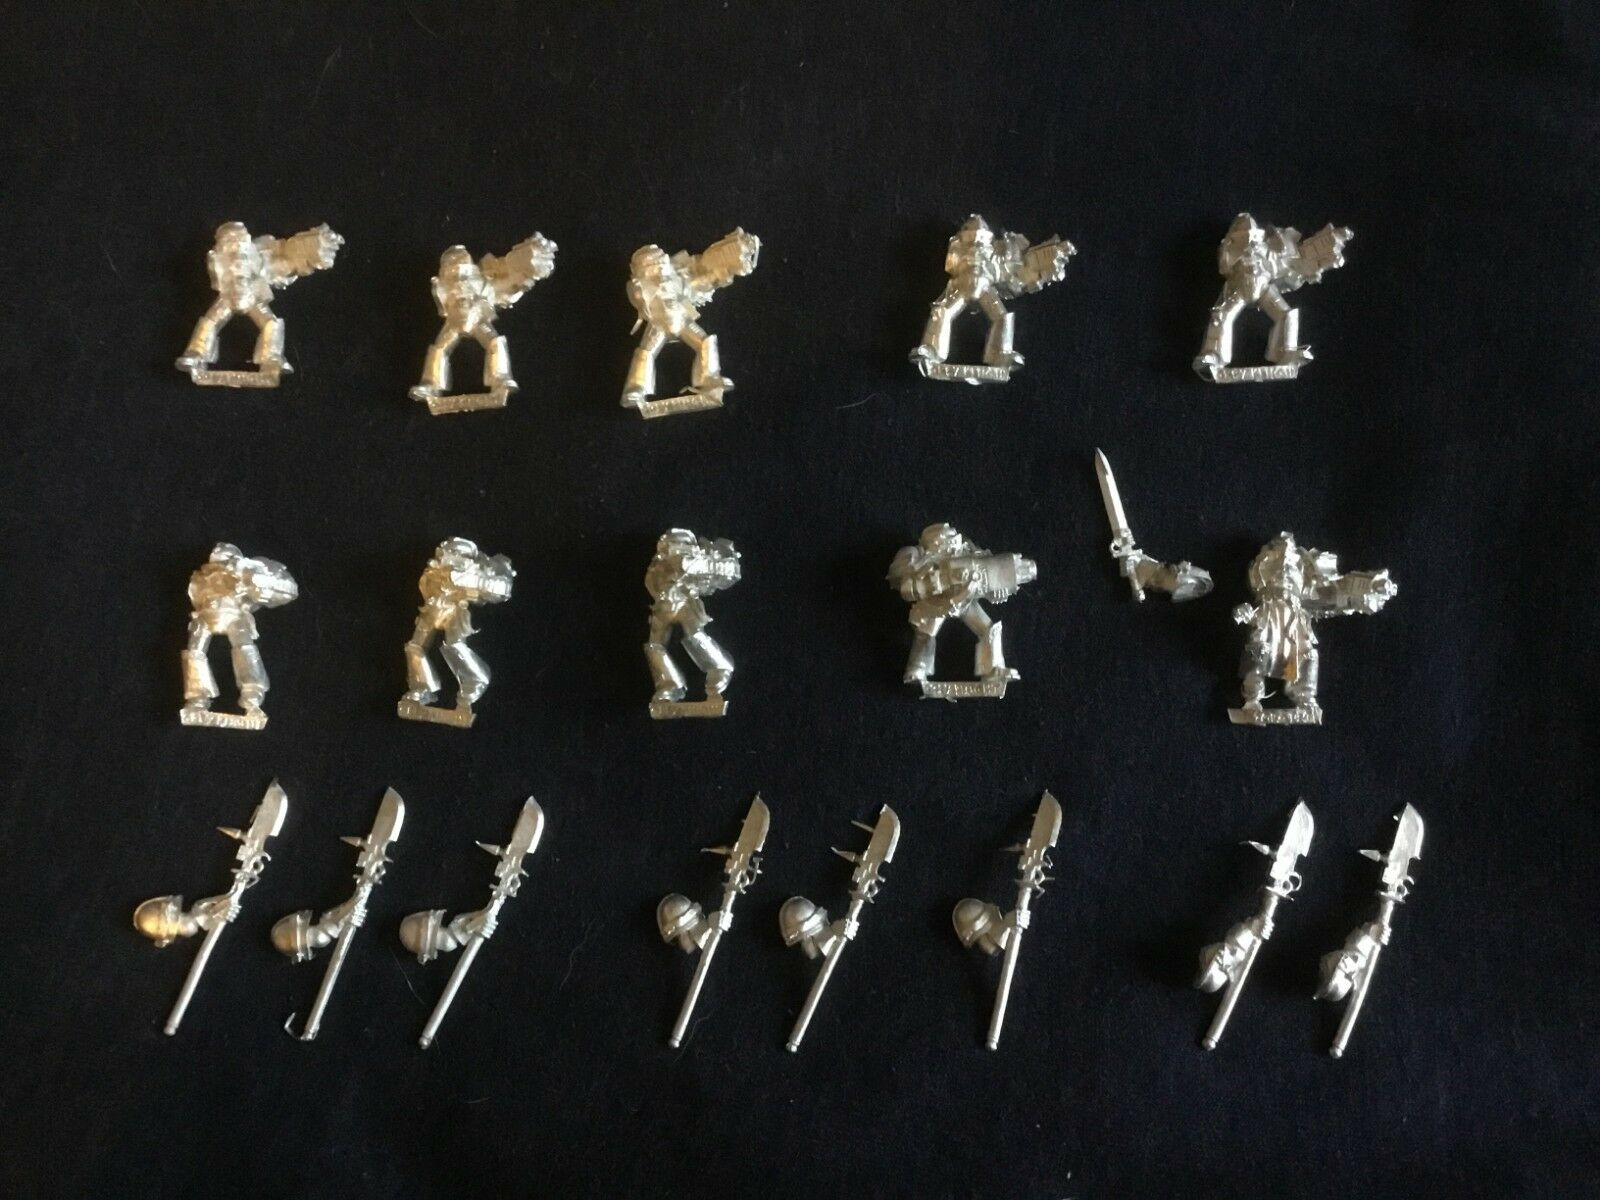 4th Grey Knight Squad of 10 OOP Metal 2002 Miniatures. Boxed, unglued, unpainted